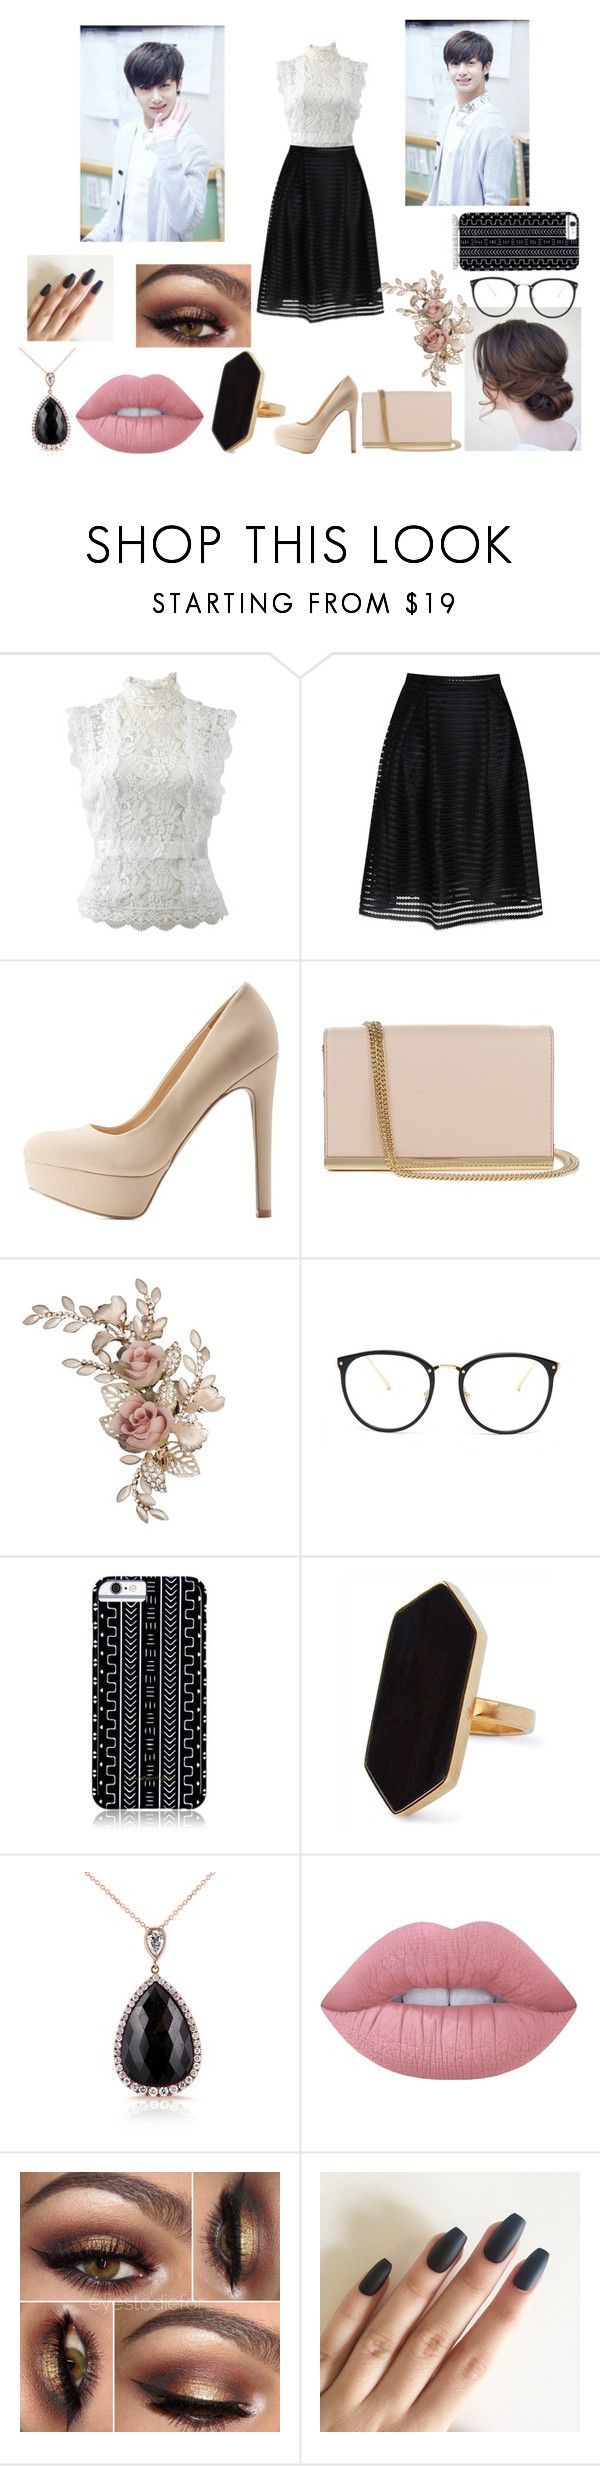 """""""The Clan: Part 1 (Hyungwon)"""" by youngandreckless-harley ❤ liked on Polyvore featuring Oscar de la Renta, Glamorous, Qupid, Diane Von Furstenberg, Linda Farrow, Savannah Hayes, Jaeger, Kobelli and Lime Crime"""